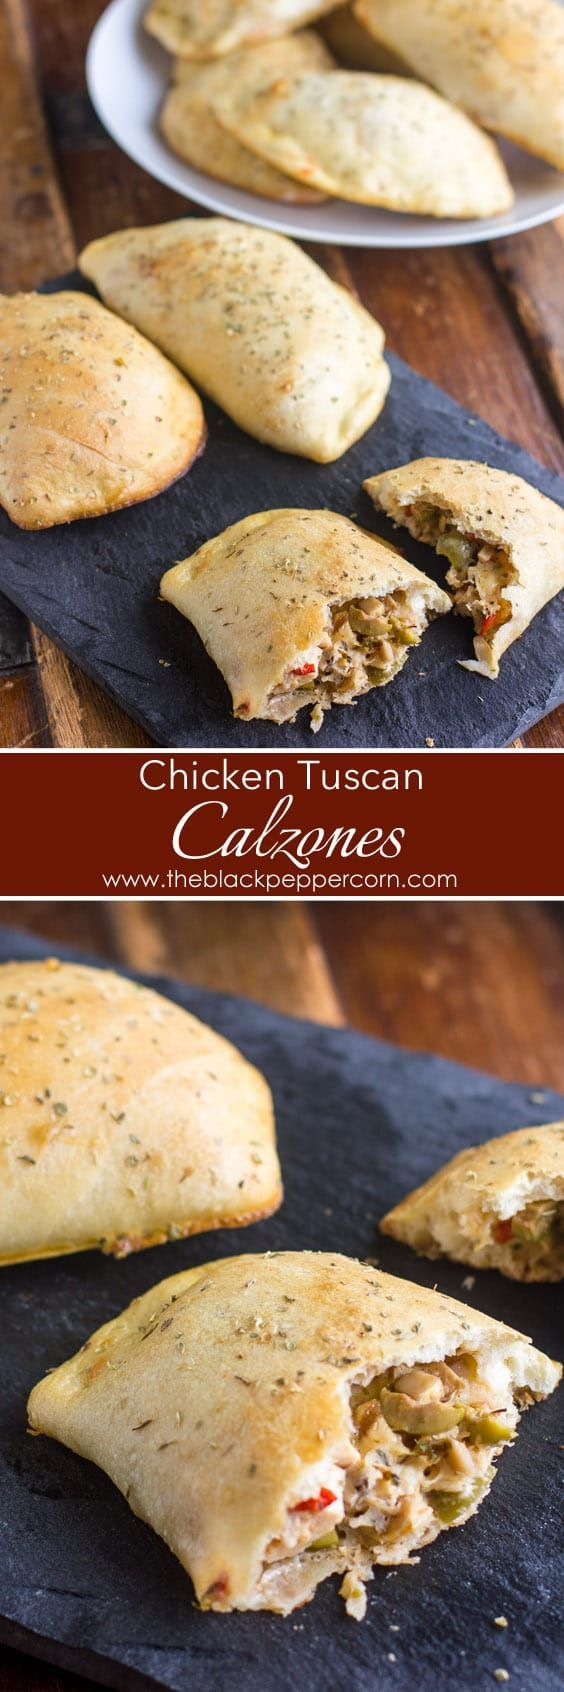 How to make Calzones - Chicken Tuscan Calzones